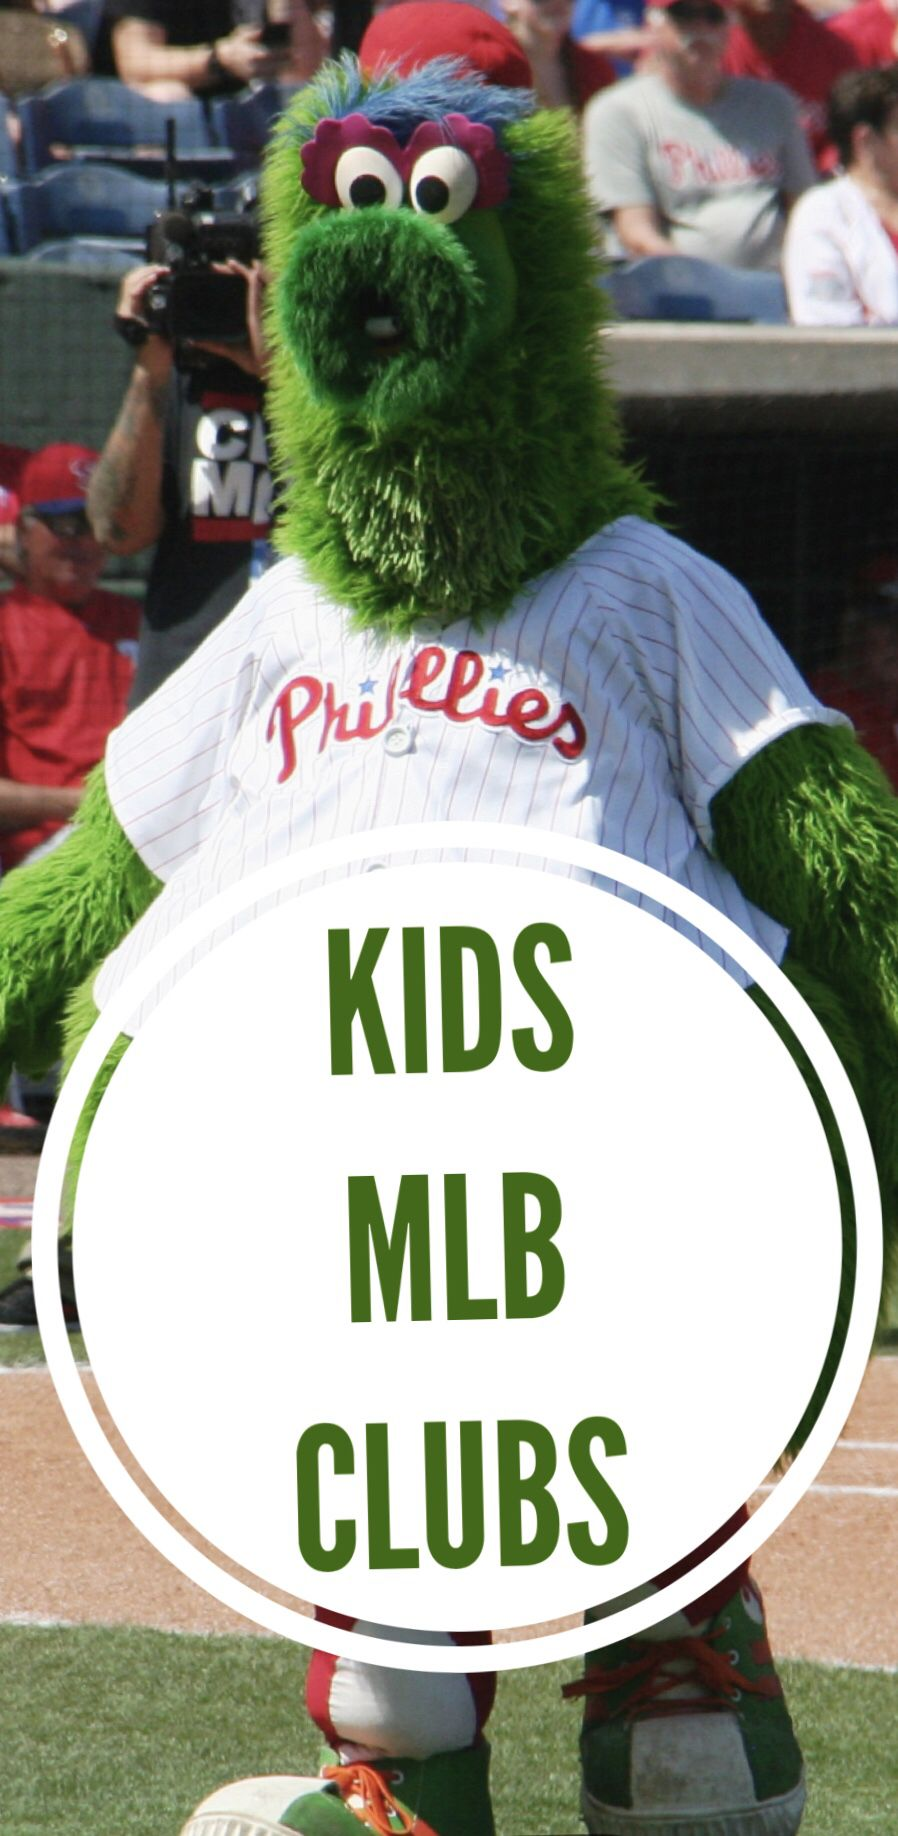 How To Sign Up For Mlb Kids Clubs Major League Baseball Kids Clubs Benefits Kids Club Kids Kids Baseball